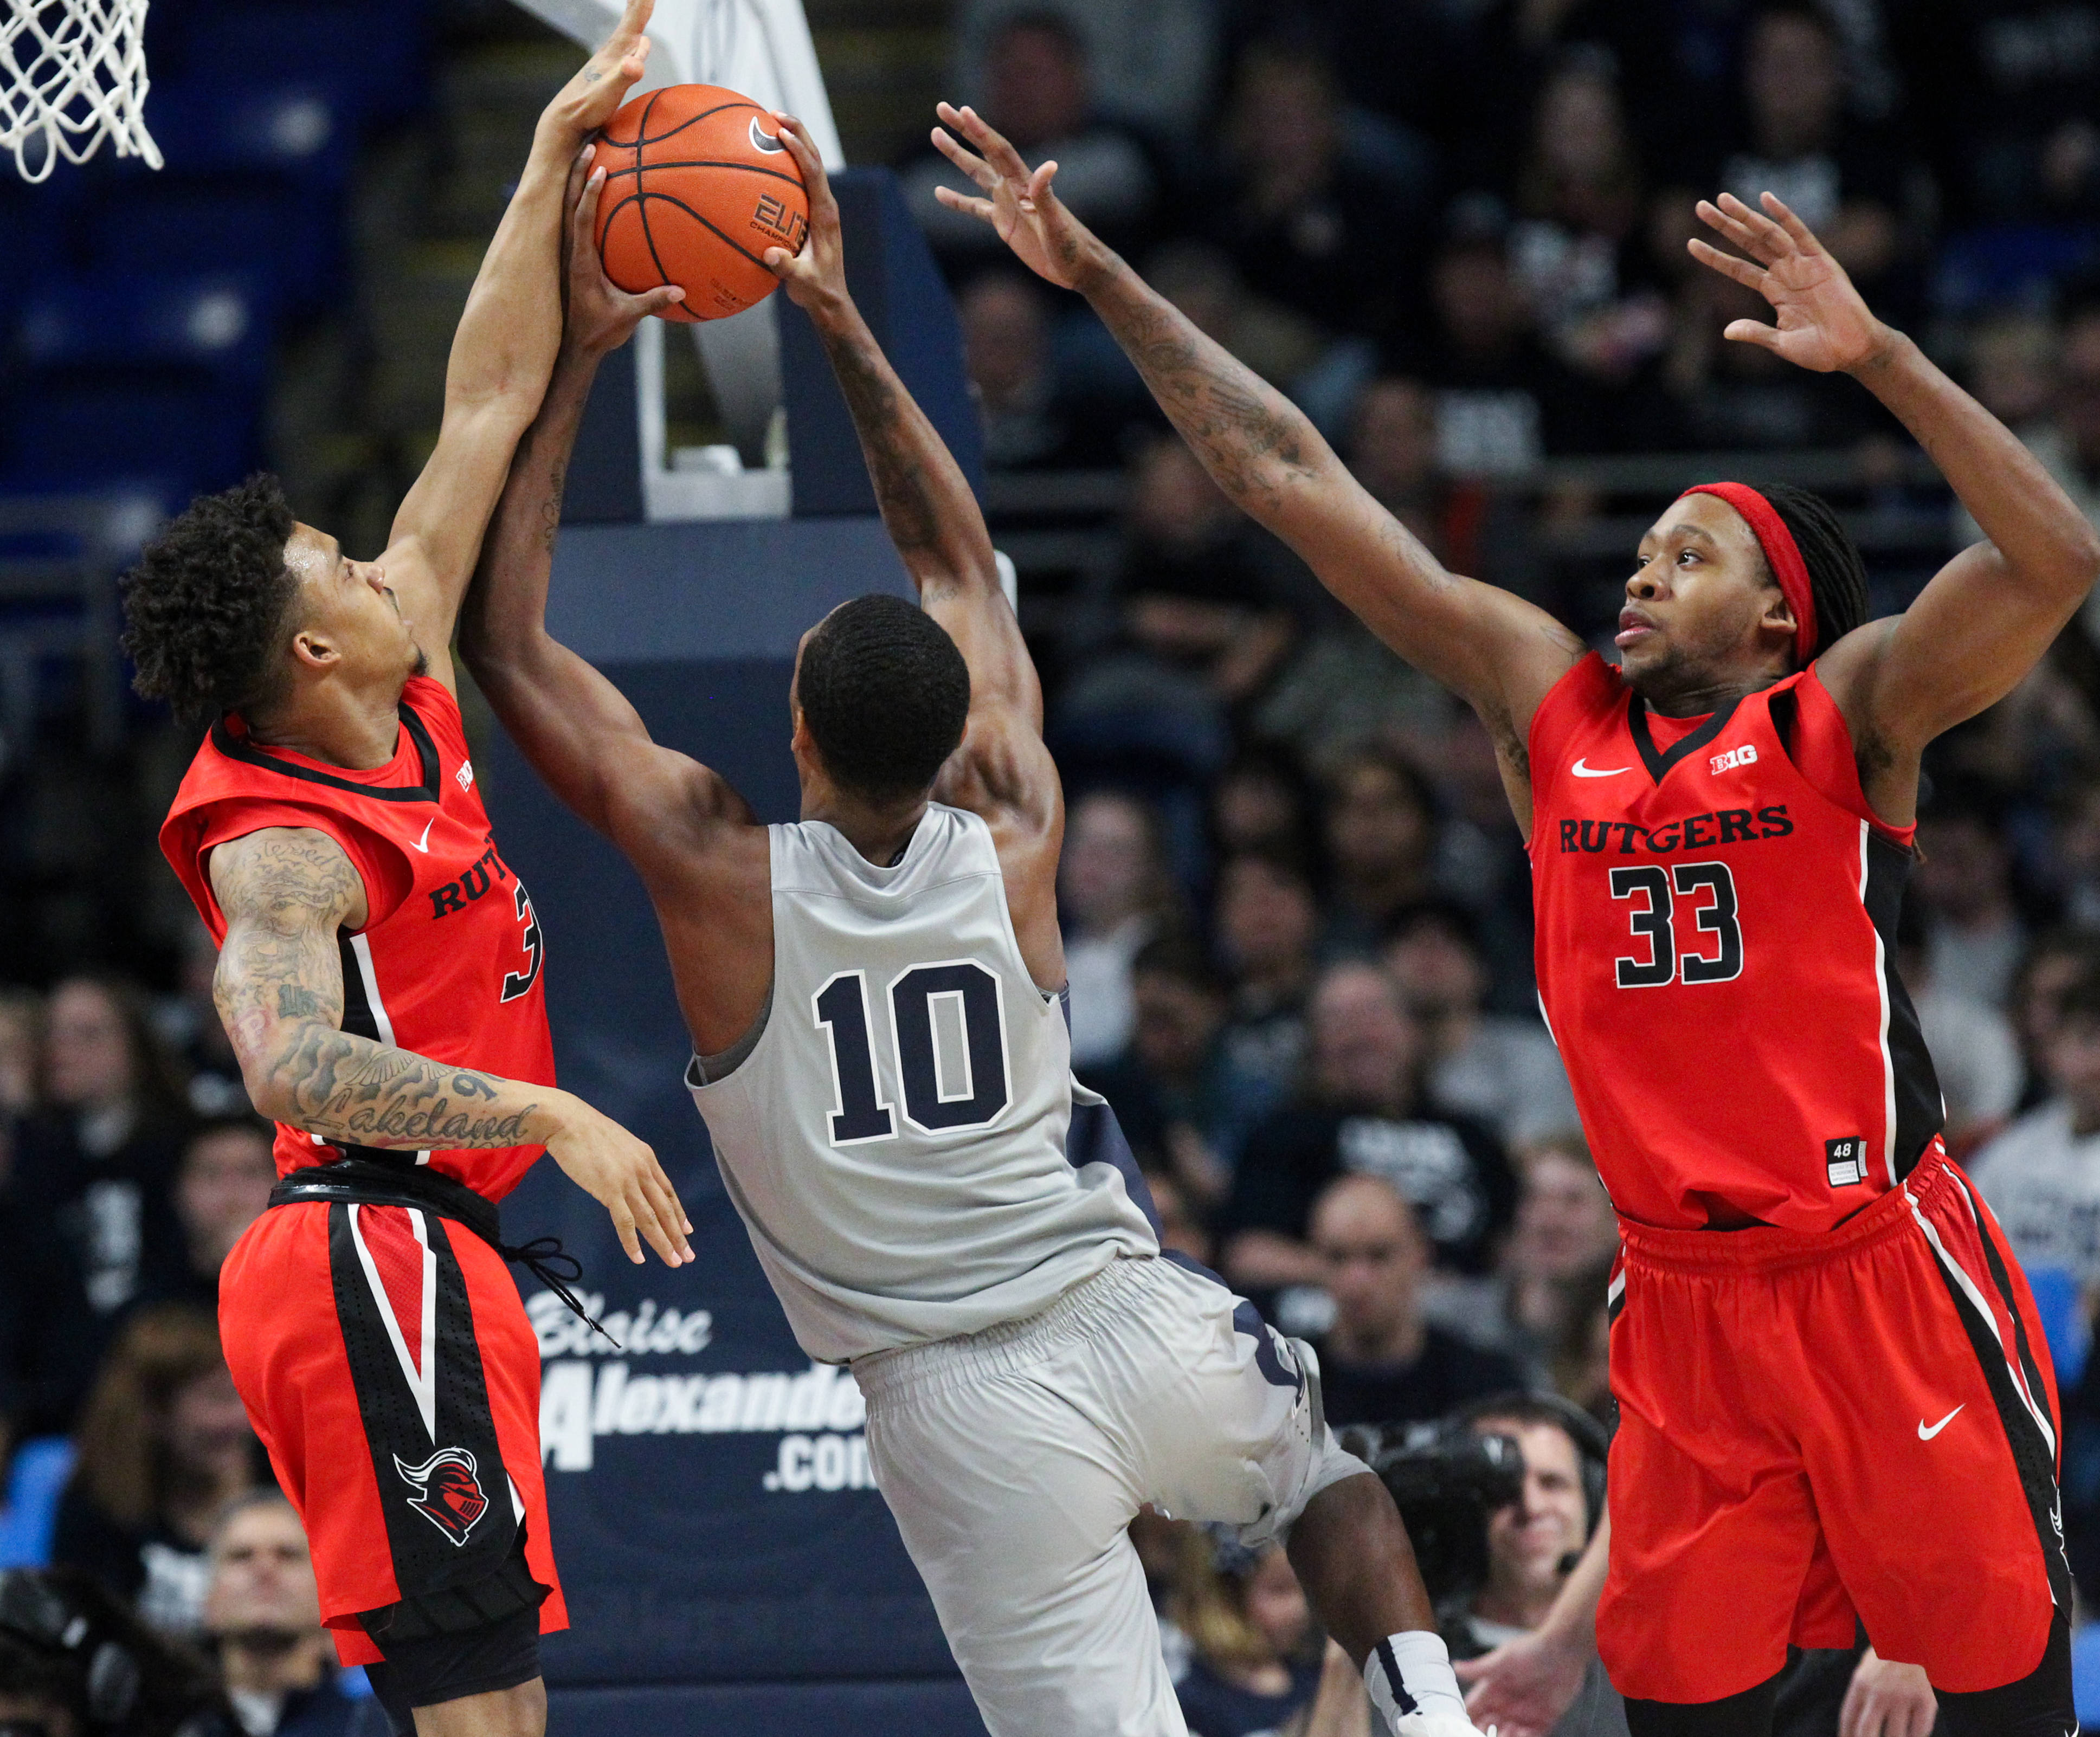 9857561-ncaa-basketball-rutgers-at-penn-state